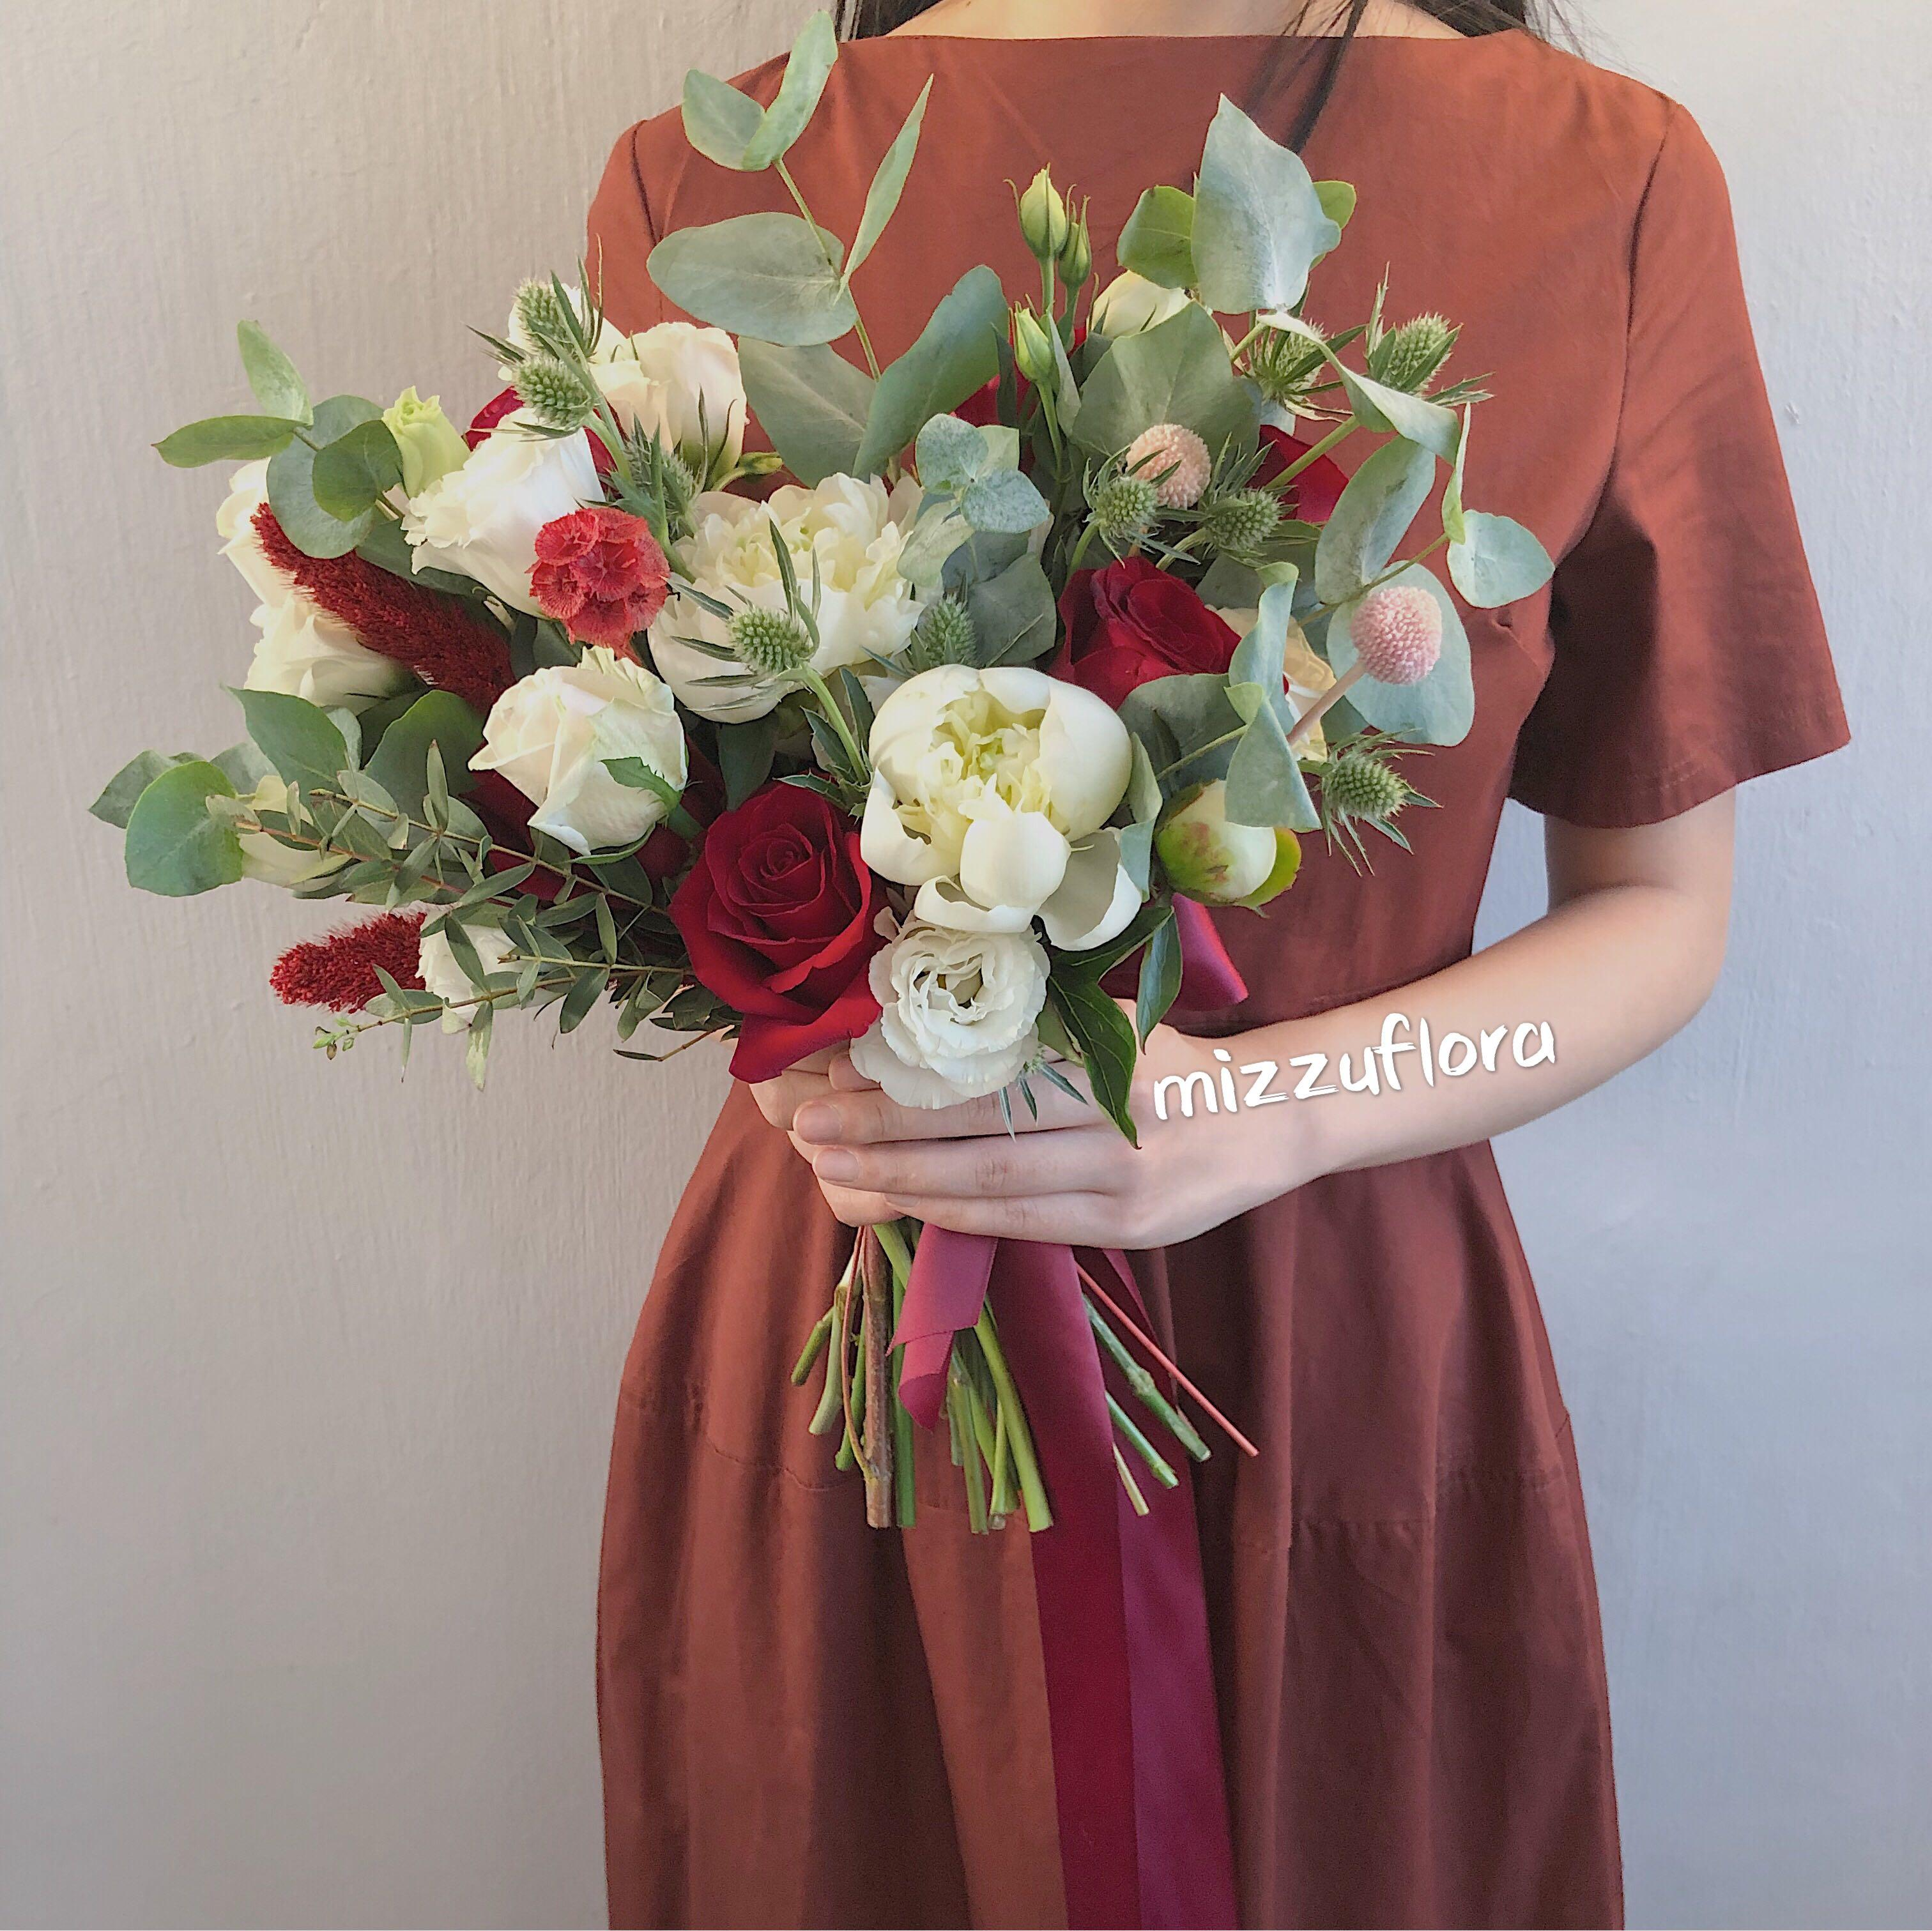 Fresh Bridal Bouquet Rustic Bridal Bouquet Round Shape Bridal Bouquet Wedding Flowers Flowers Roses 婚礼花束 手捧花 新娘花 Gardening Flowers Bouquets On Carousell